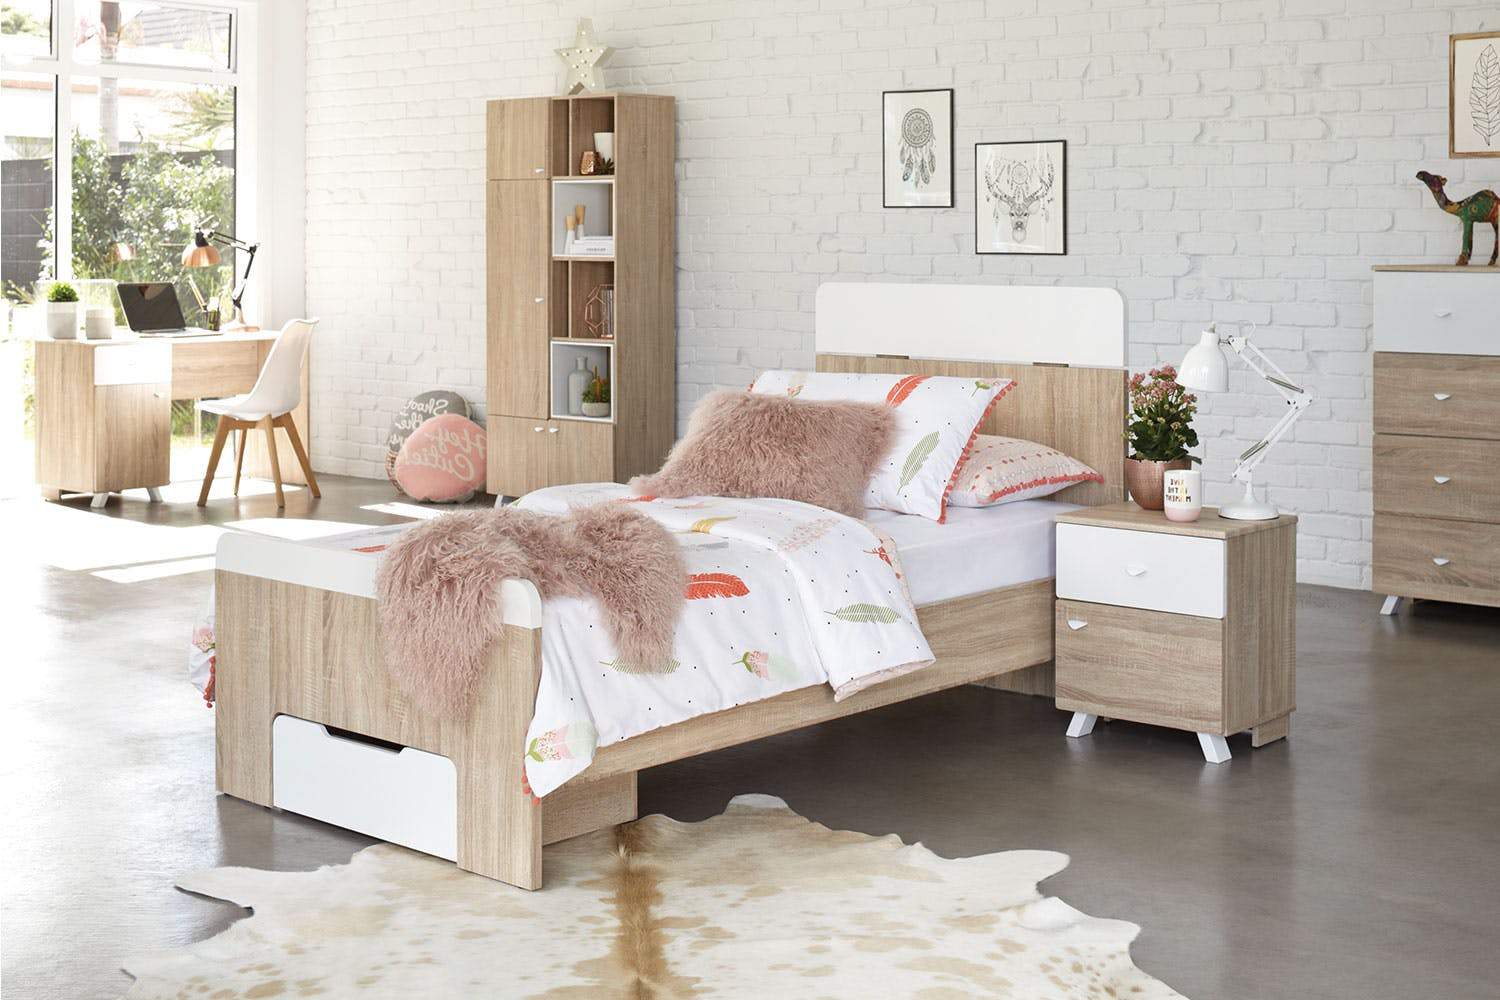 maali single bed frame by stoke furniture - Single Bed Frame